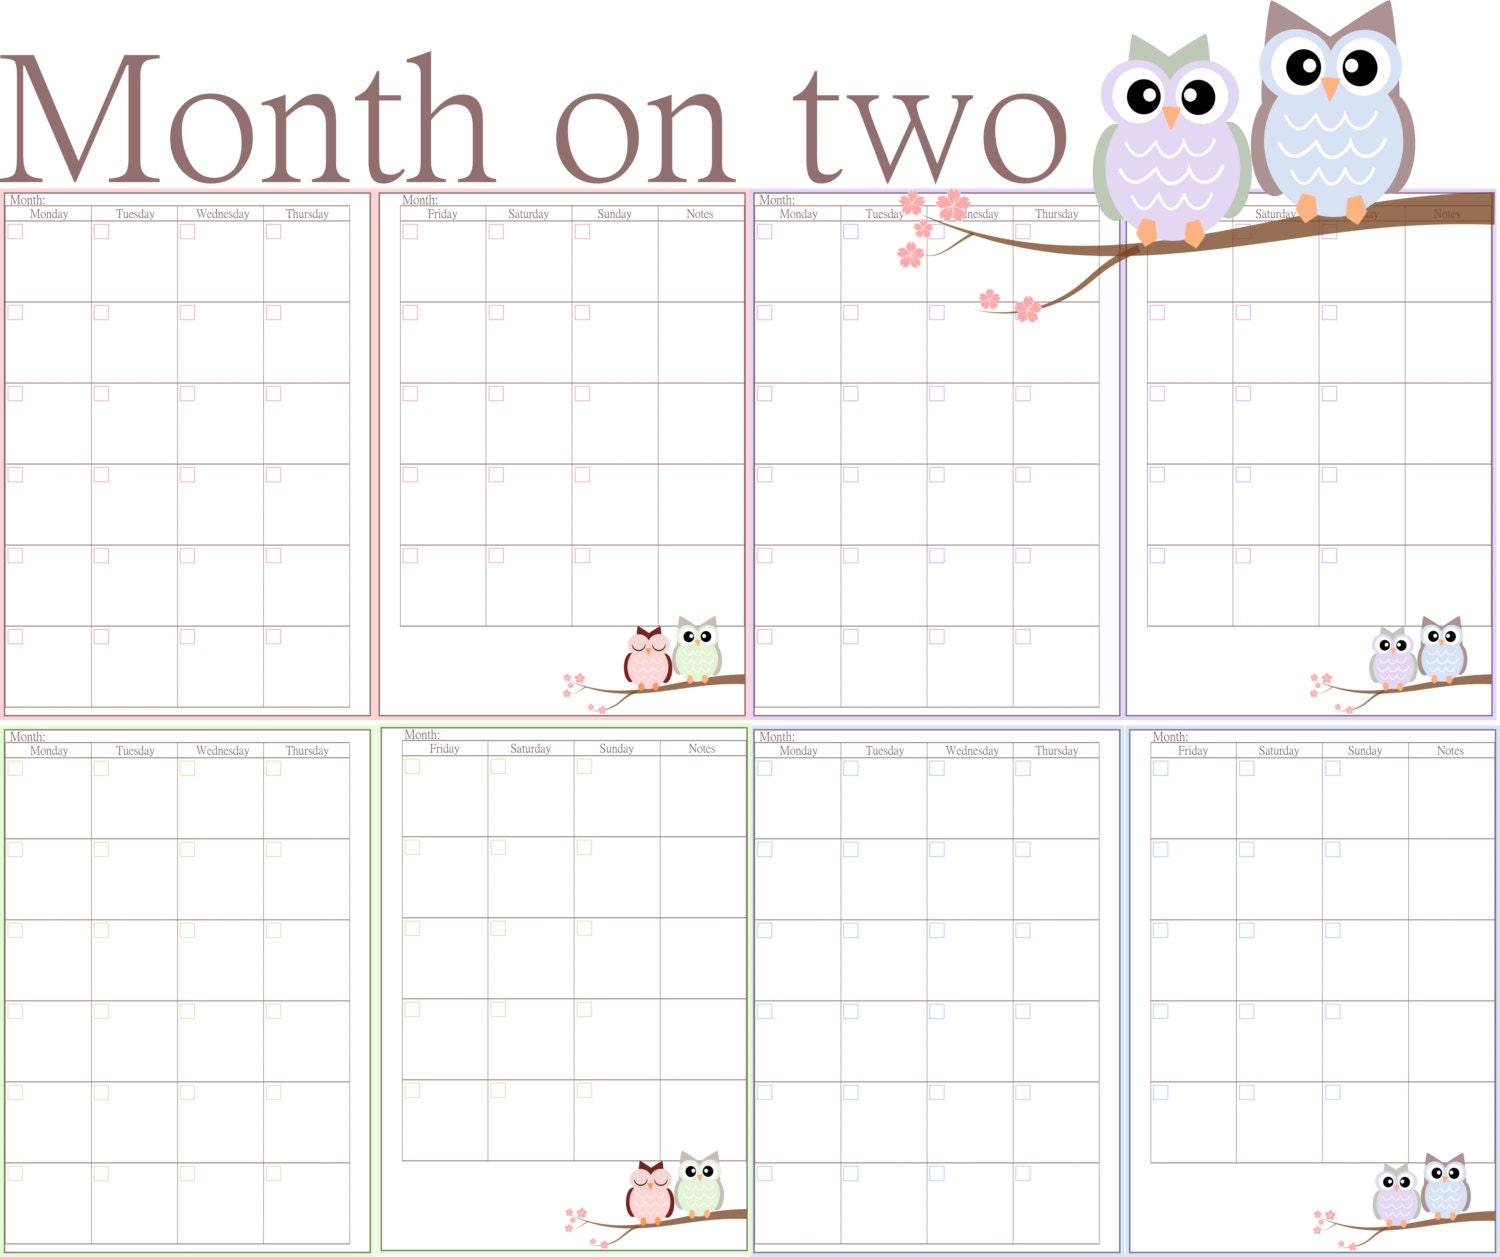 2016 Free Printable Calendar 4 Months Per Page | Calendar Template ...